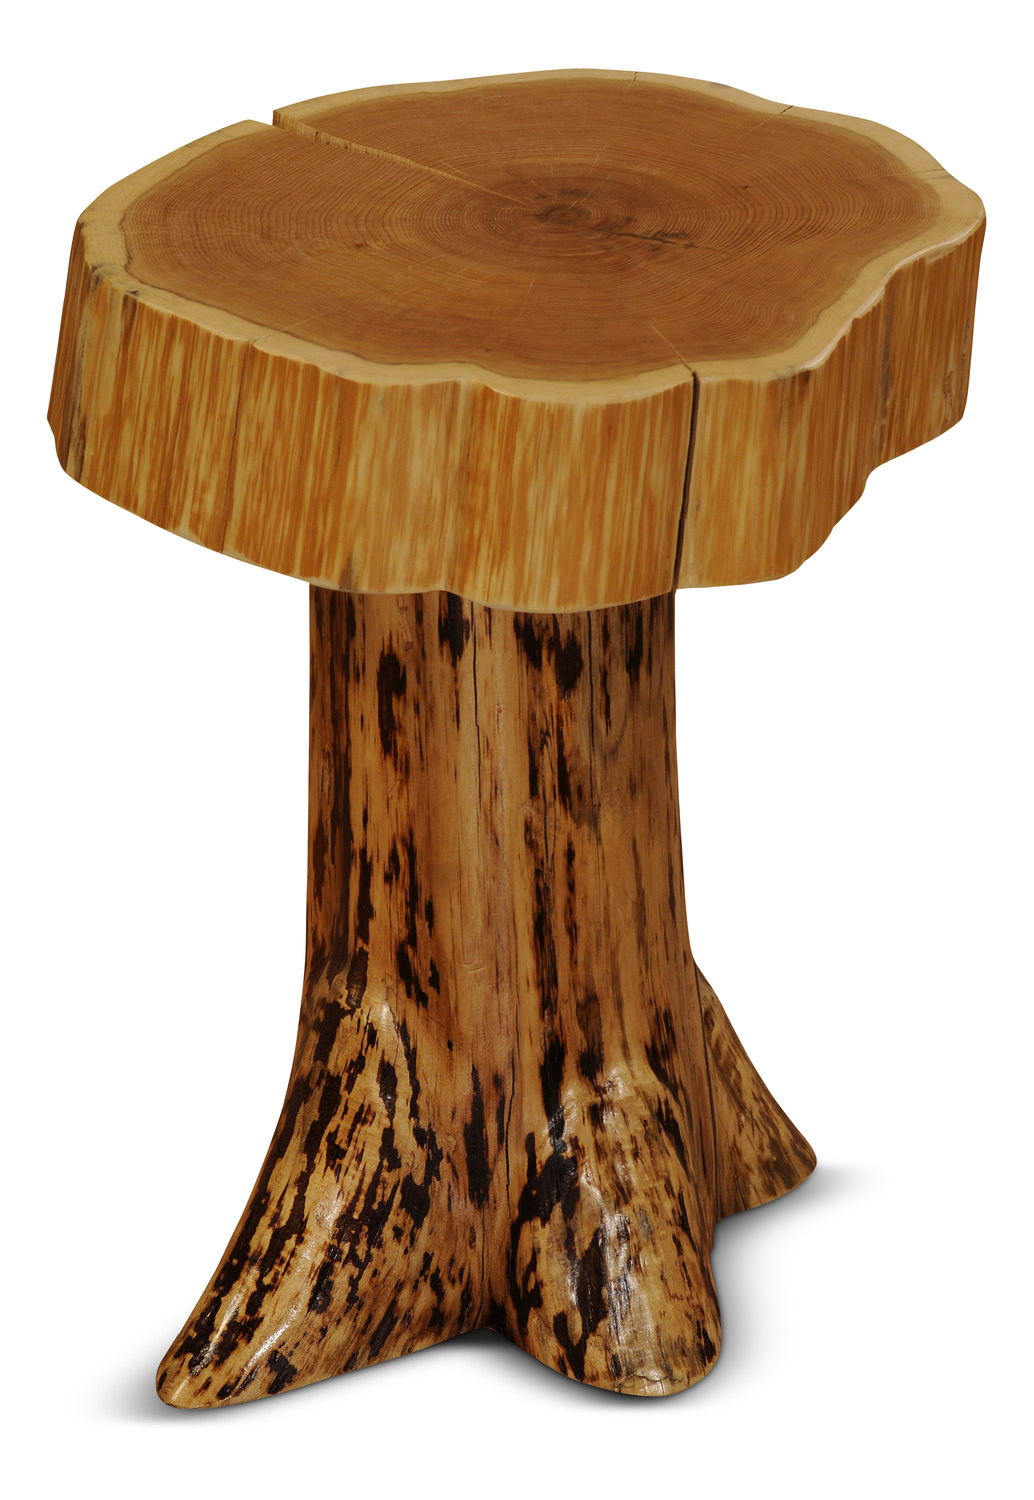 Super Cedar Log Stump End Table Download Free Architecture Designs Scobabritishbridgeorg